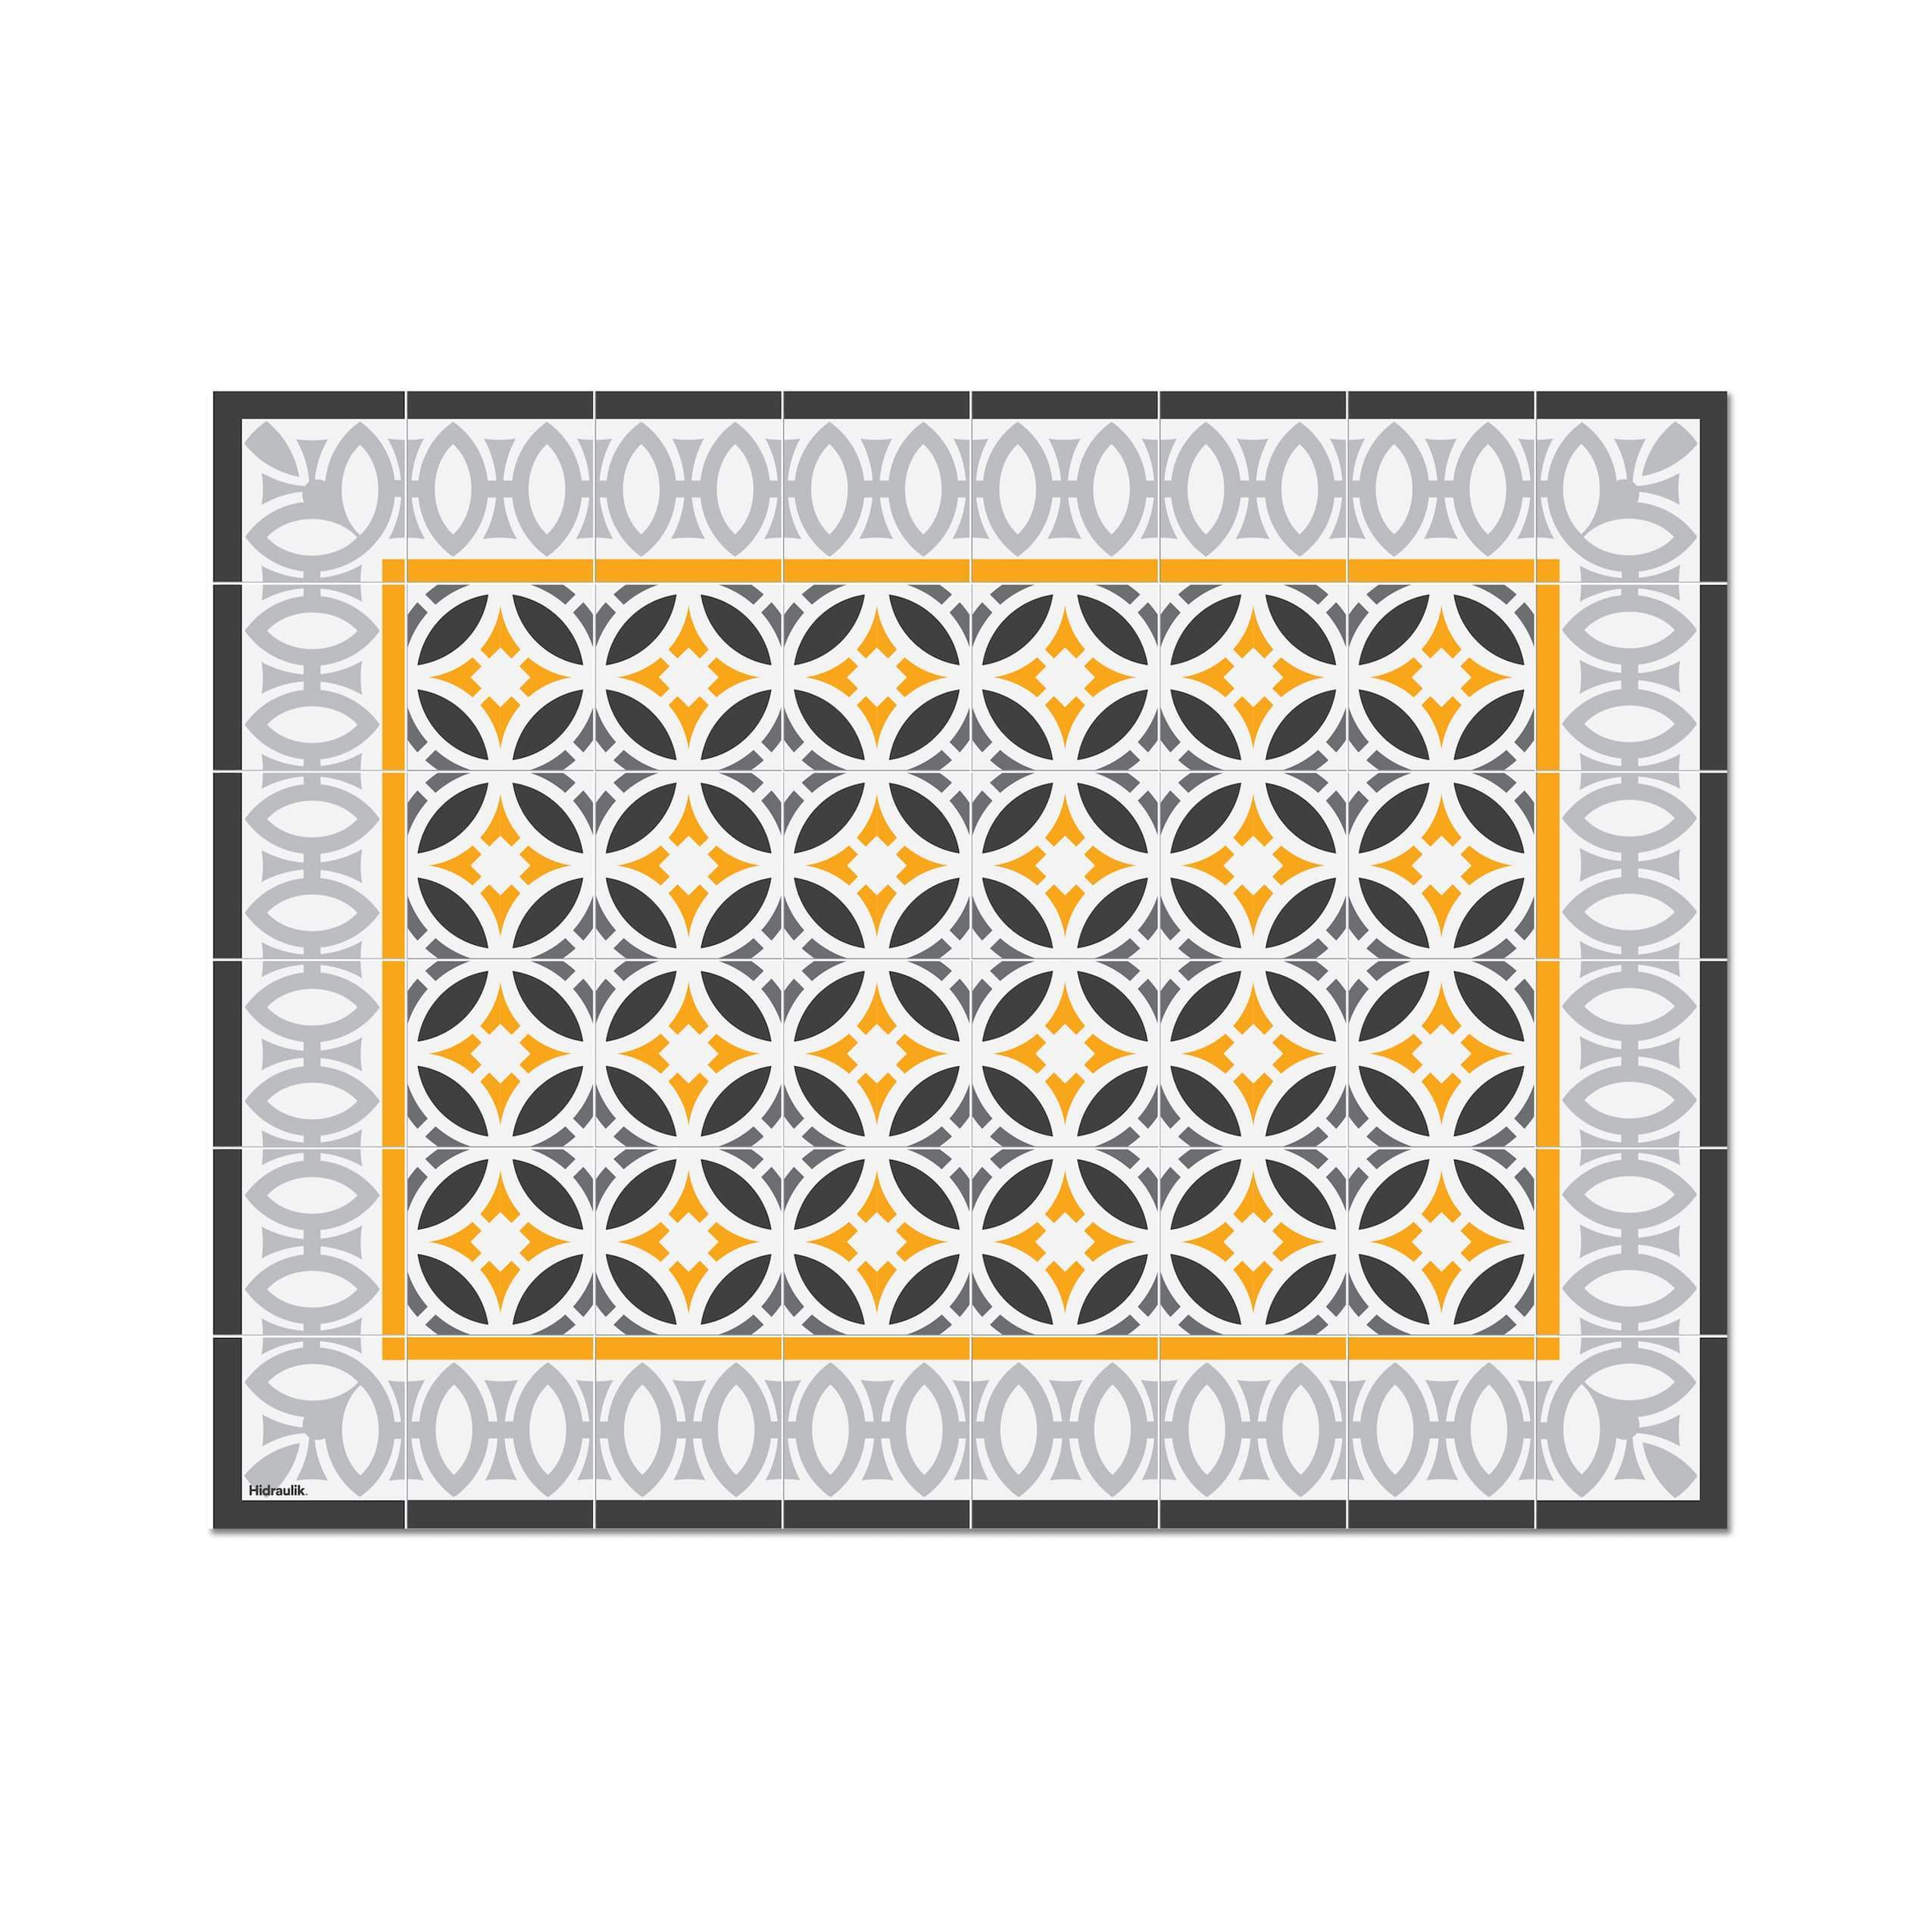 Hidraulik Letamendi rectangular placemat vinyl washable